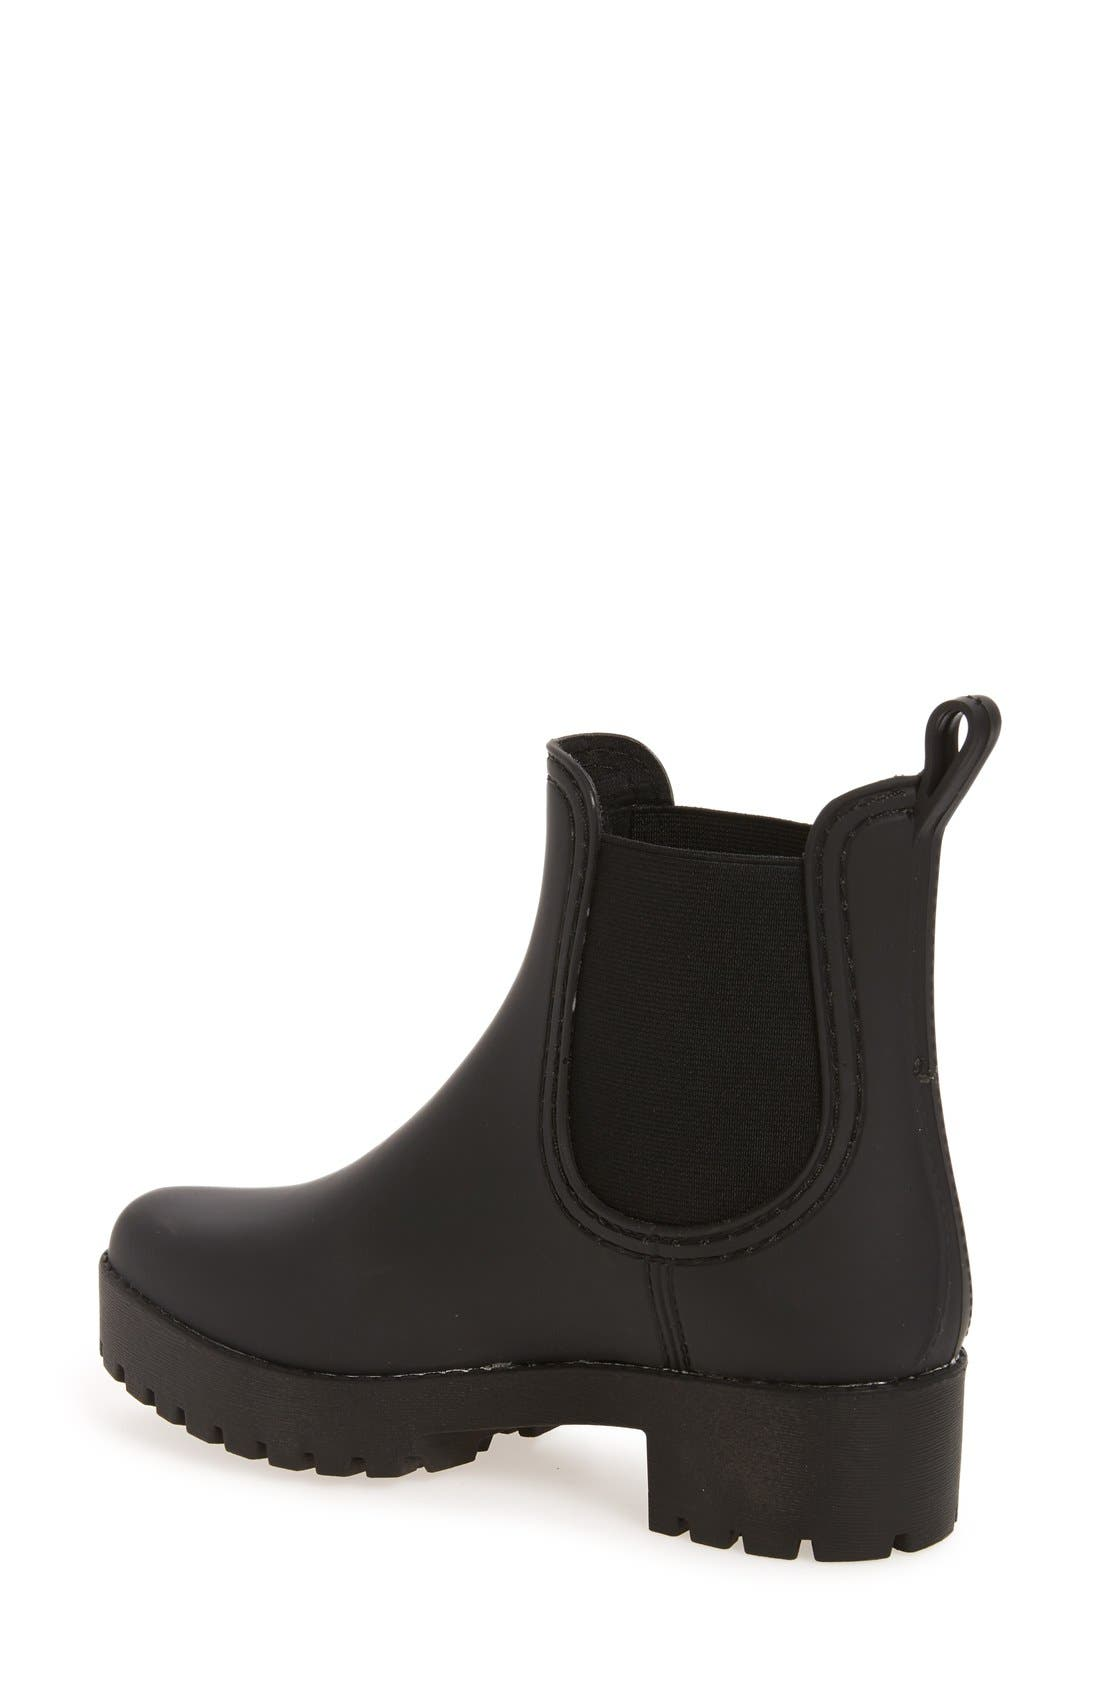 Cloudy Chelsea Rain Boot,                             Alternate thumbnail 2, color,                             Black Matte Black